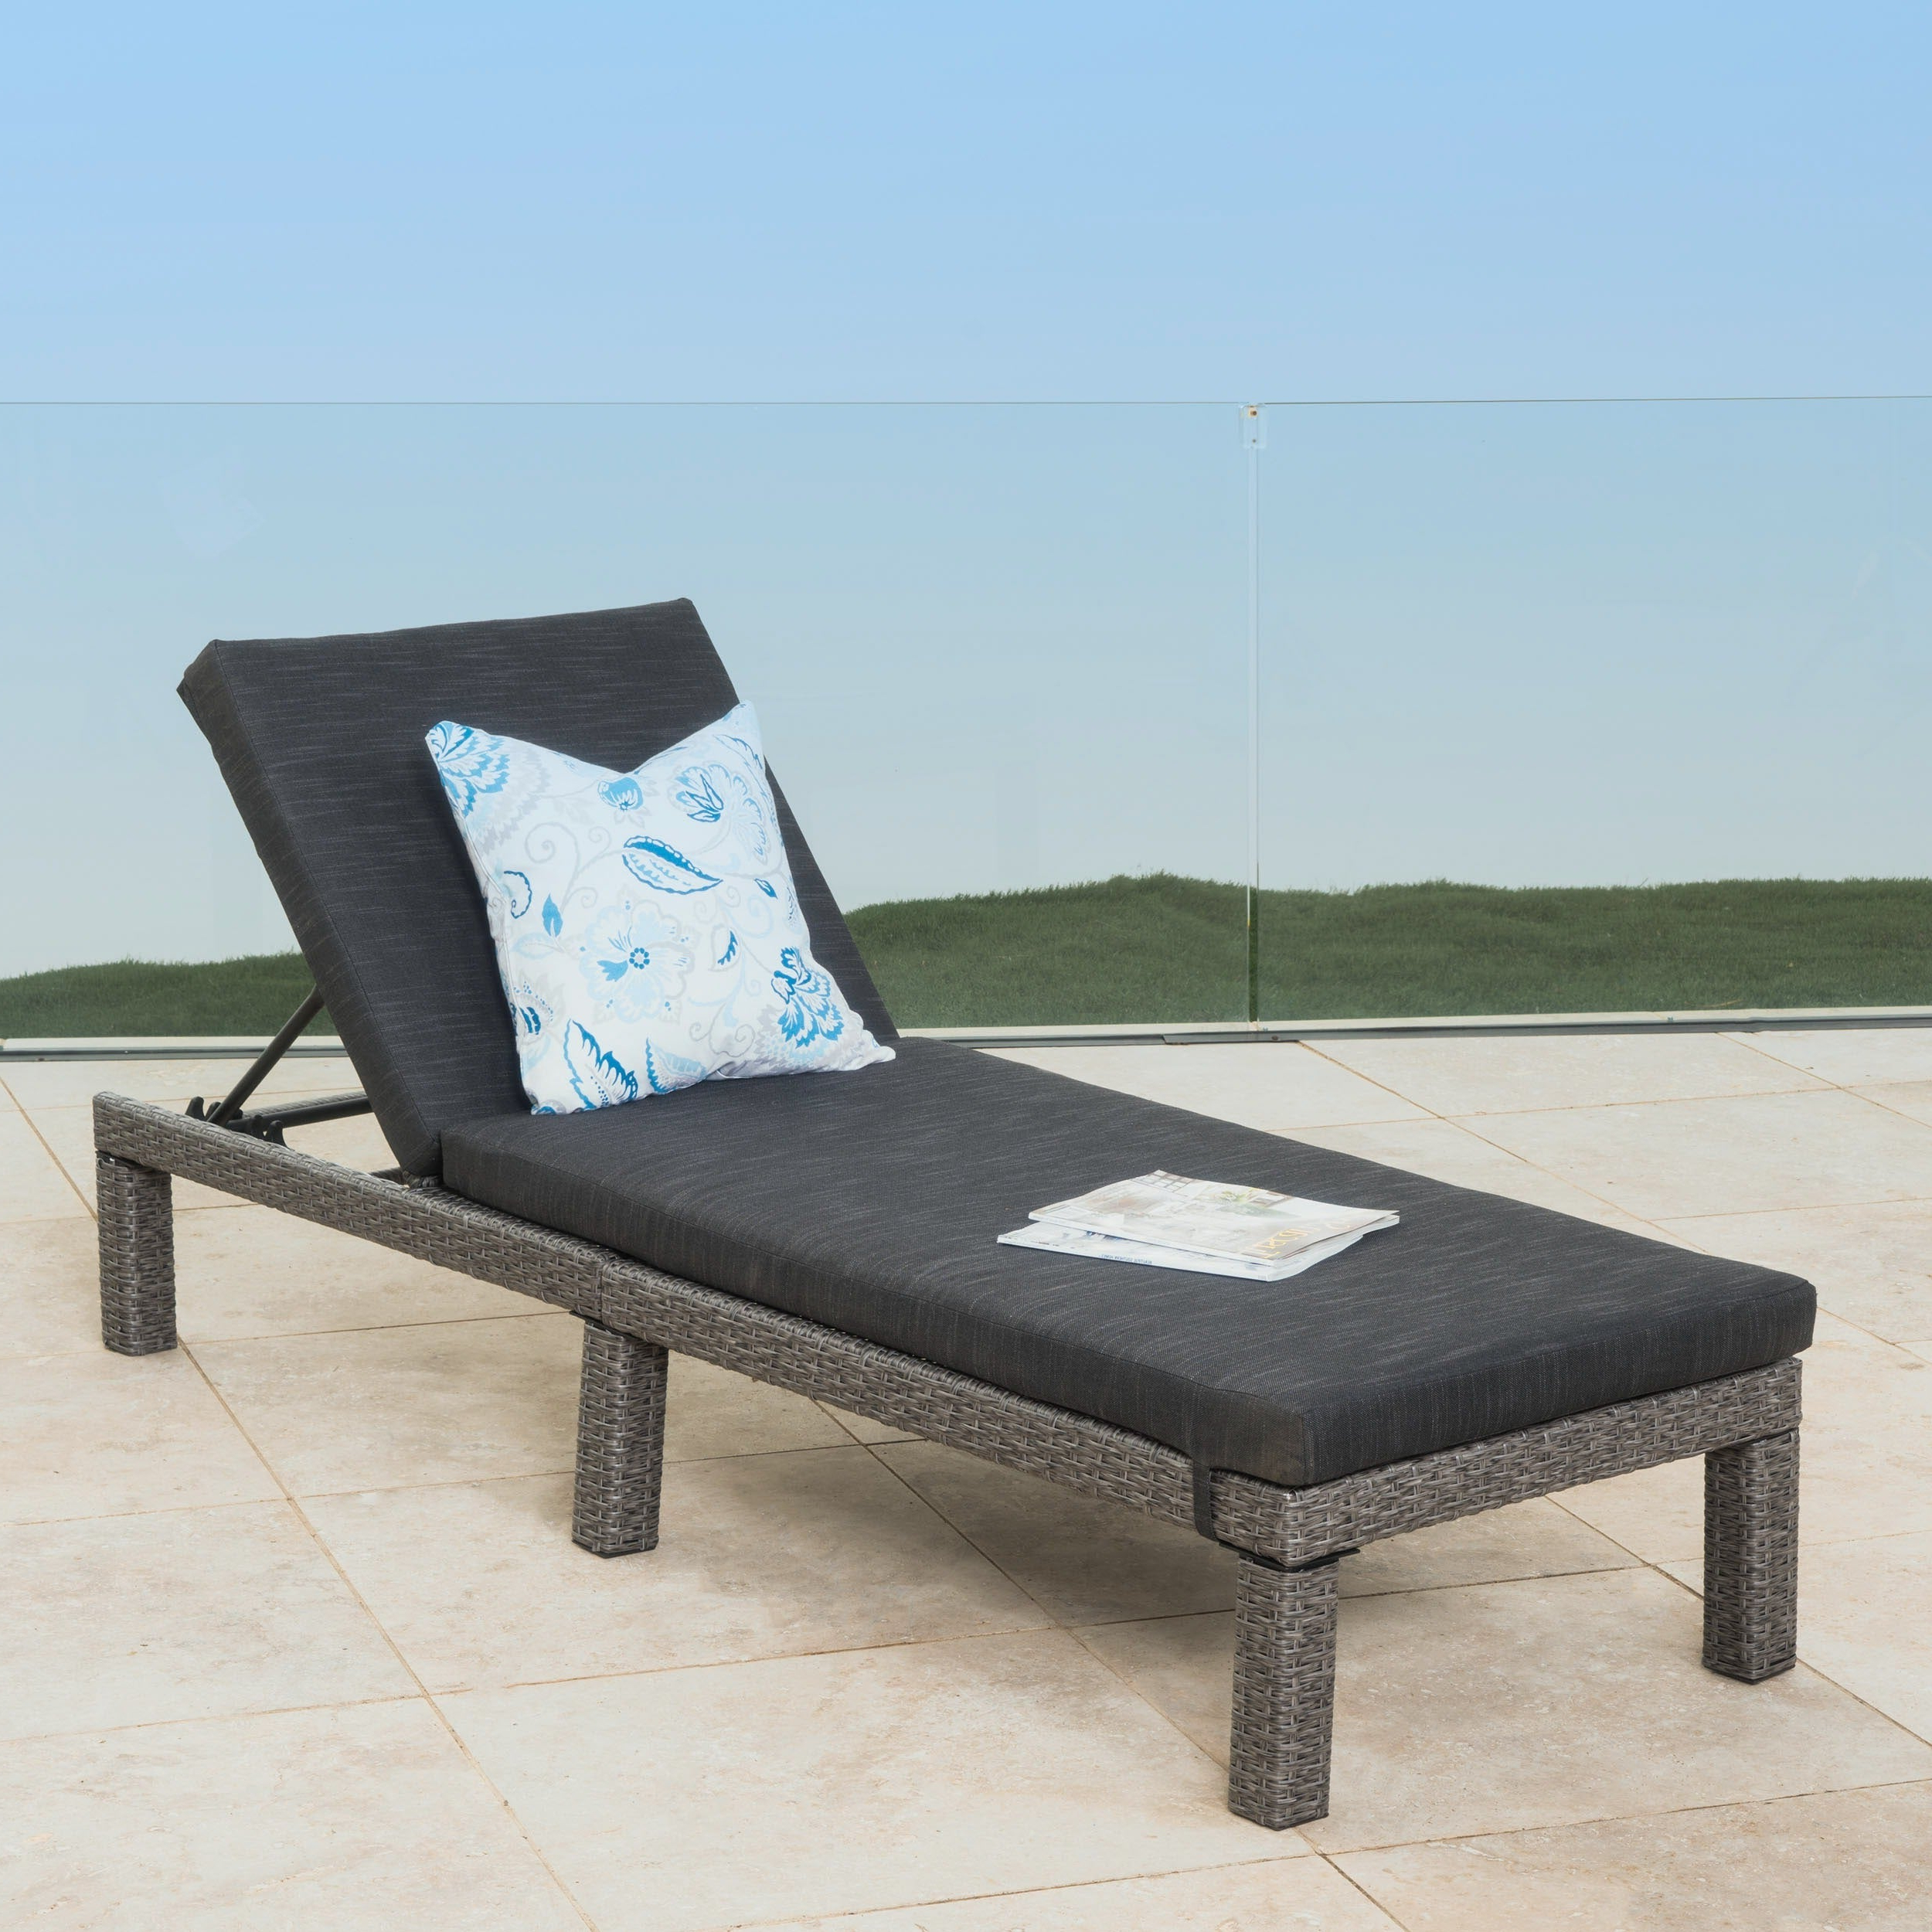 Adjustable Outdoor Wicker Chaise Lounge Chairs With Cushion In Preferred Puerta Outdoor Adjustable Wicker Chaise Lounge With Cushionchristopher  Knight Home (Gallery 8 of 25)